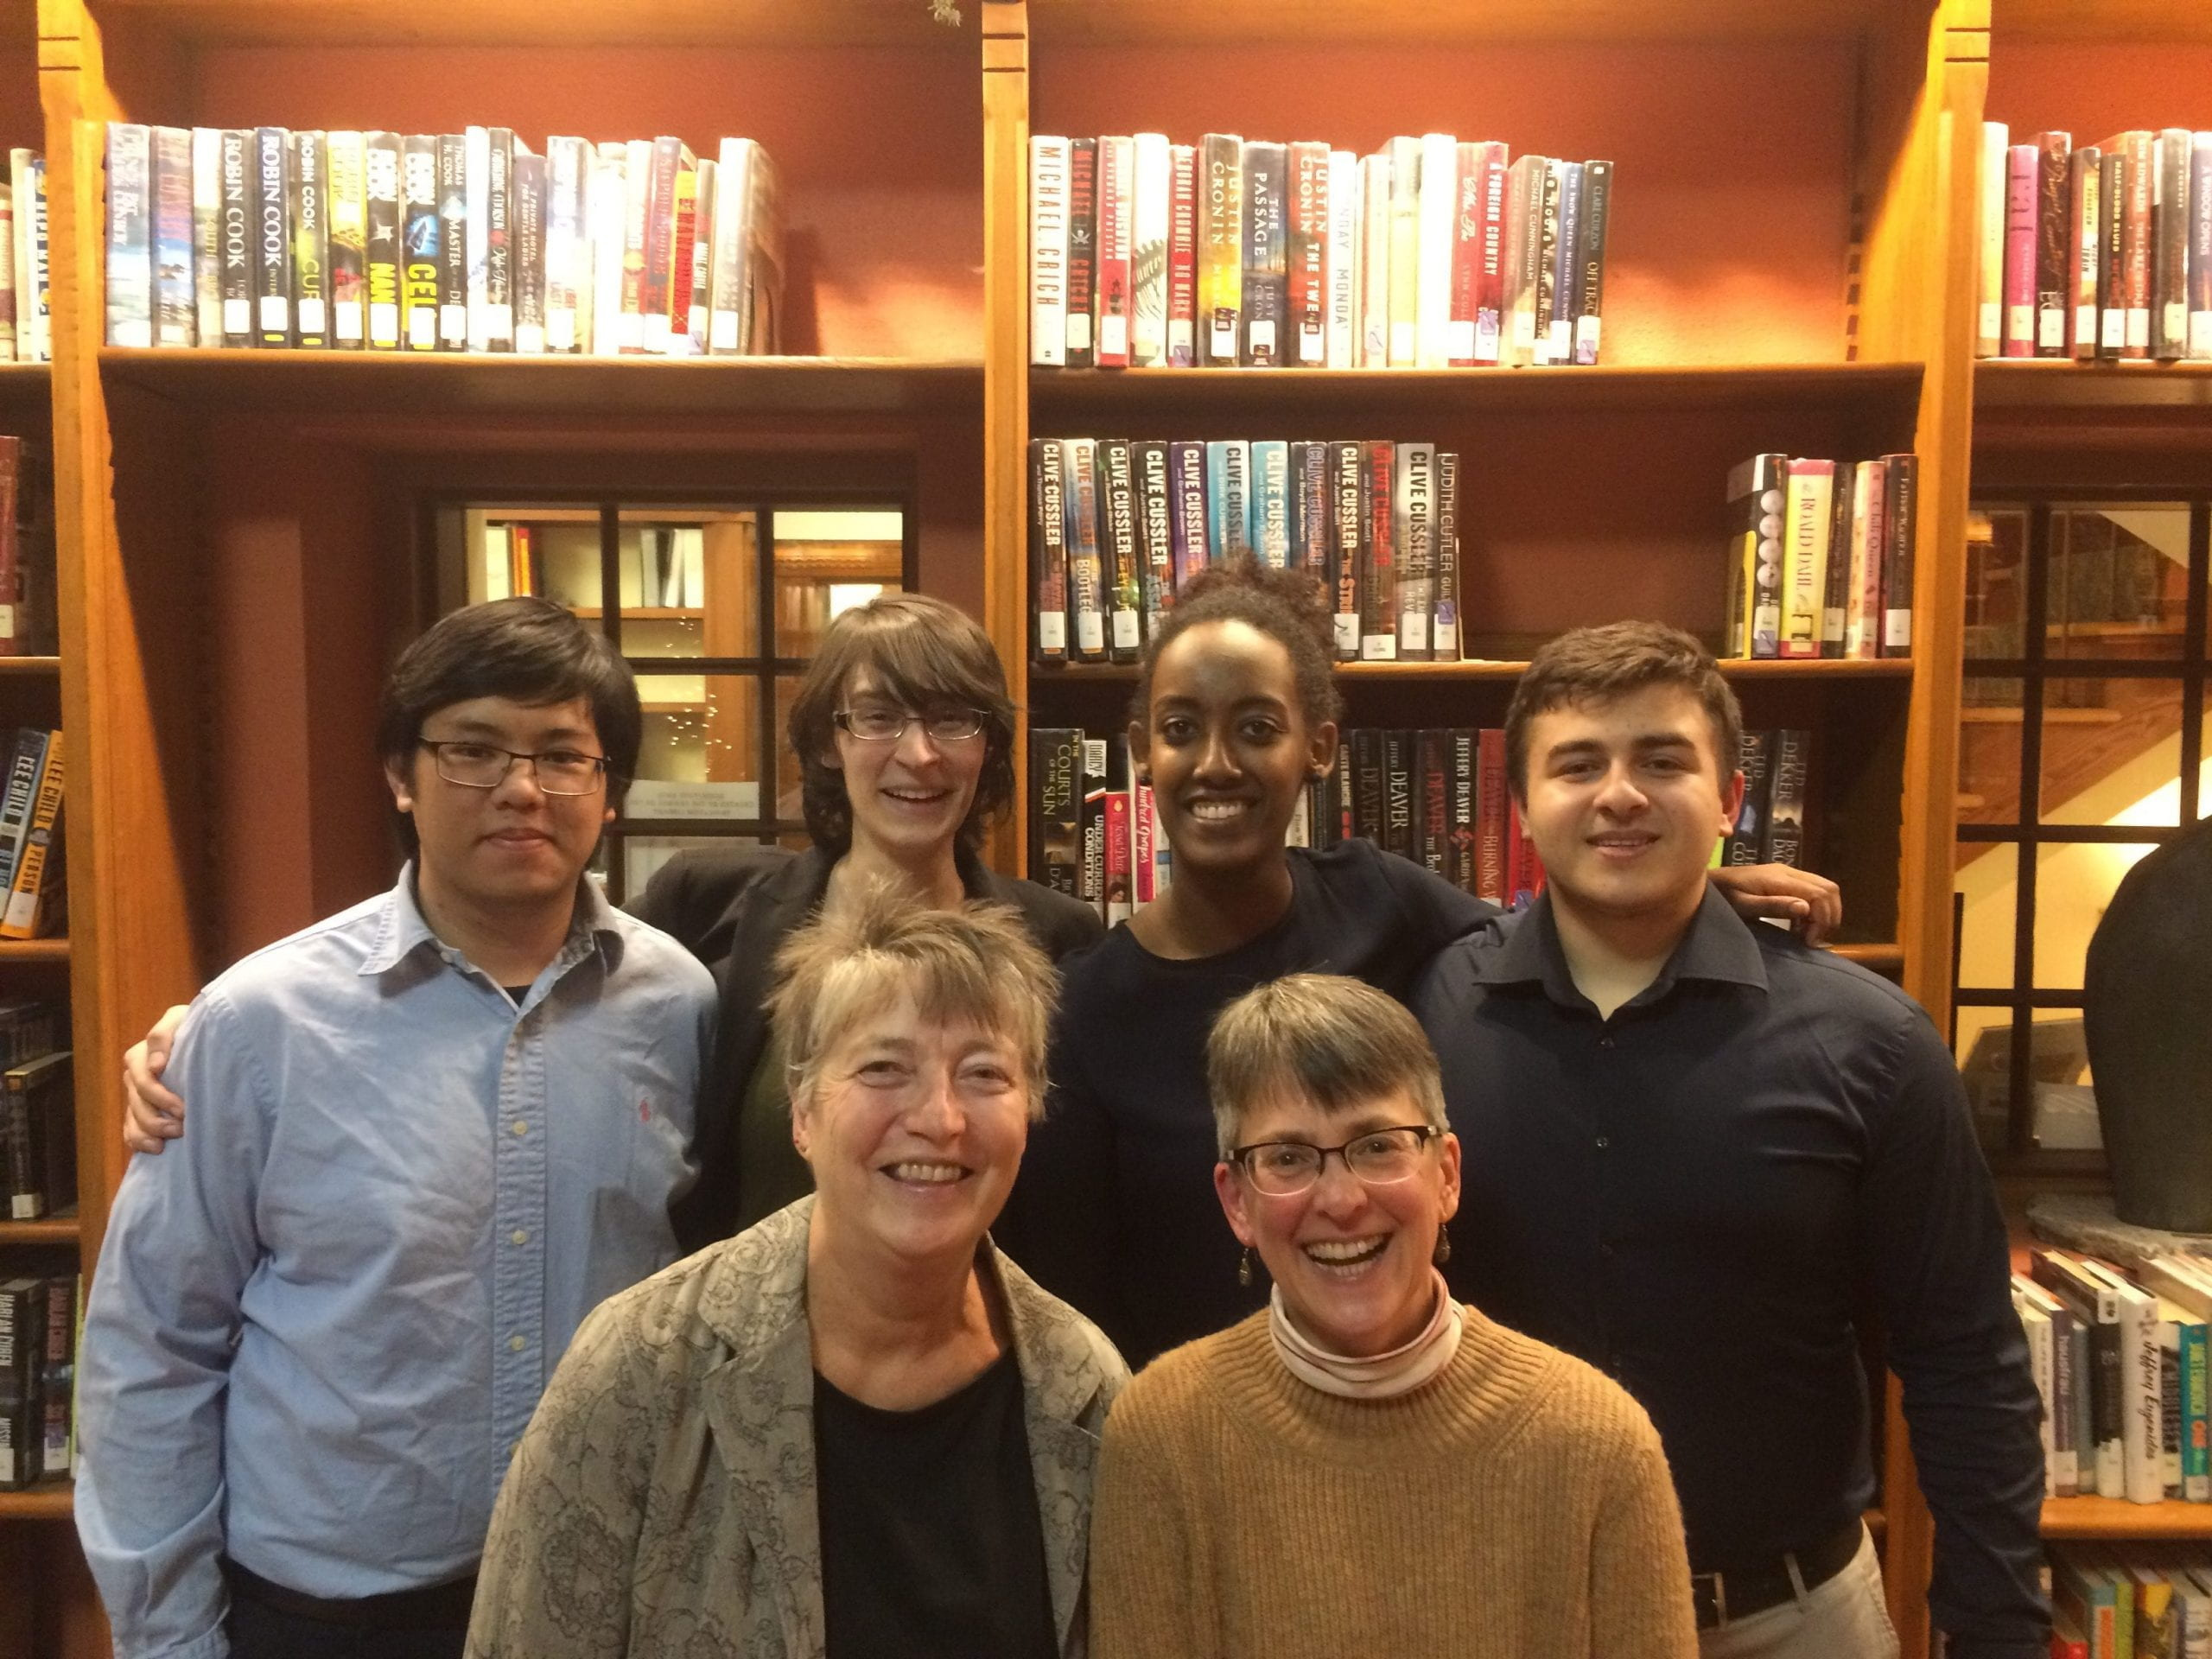 On November 17, 2016, The Landmark featured students working with the Princeton Arts Society and the Princeton Historical Society to develop a digital virtual tour of the history of the town of Princeton.